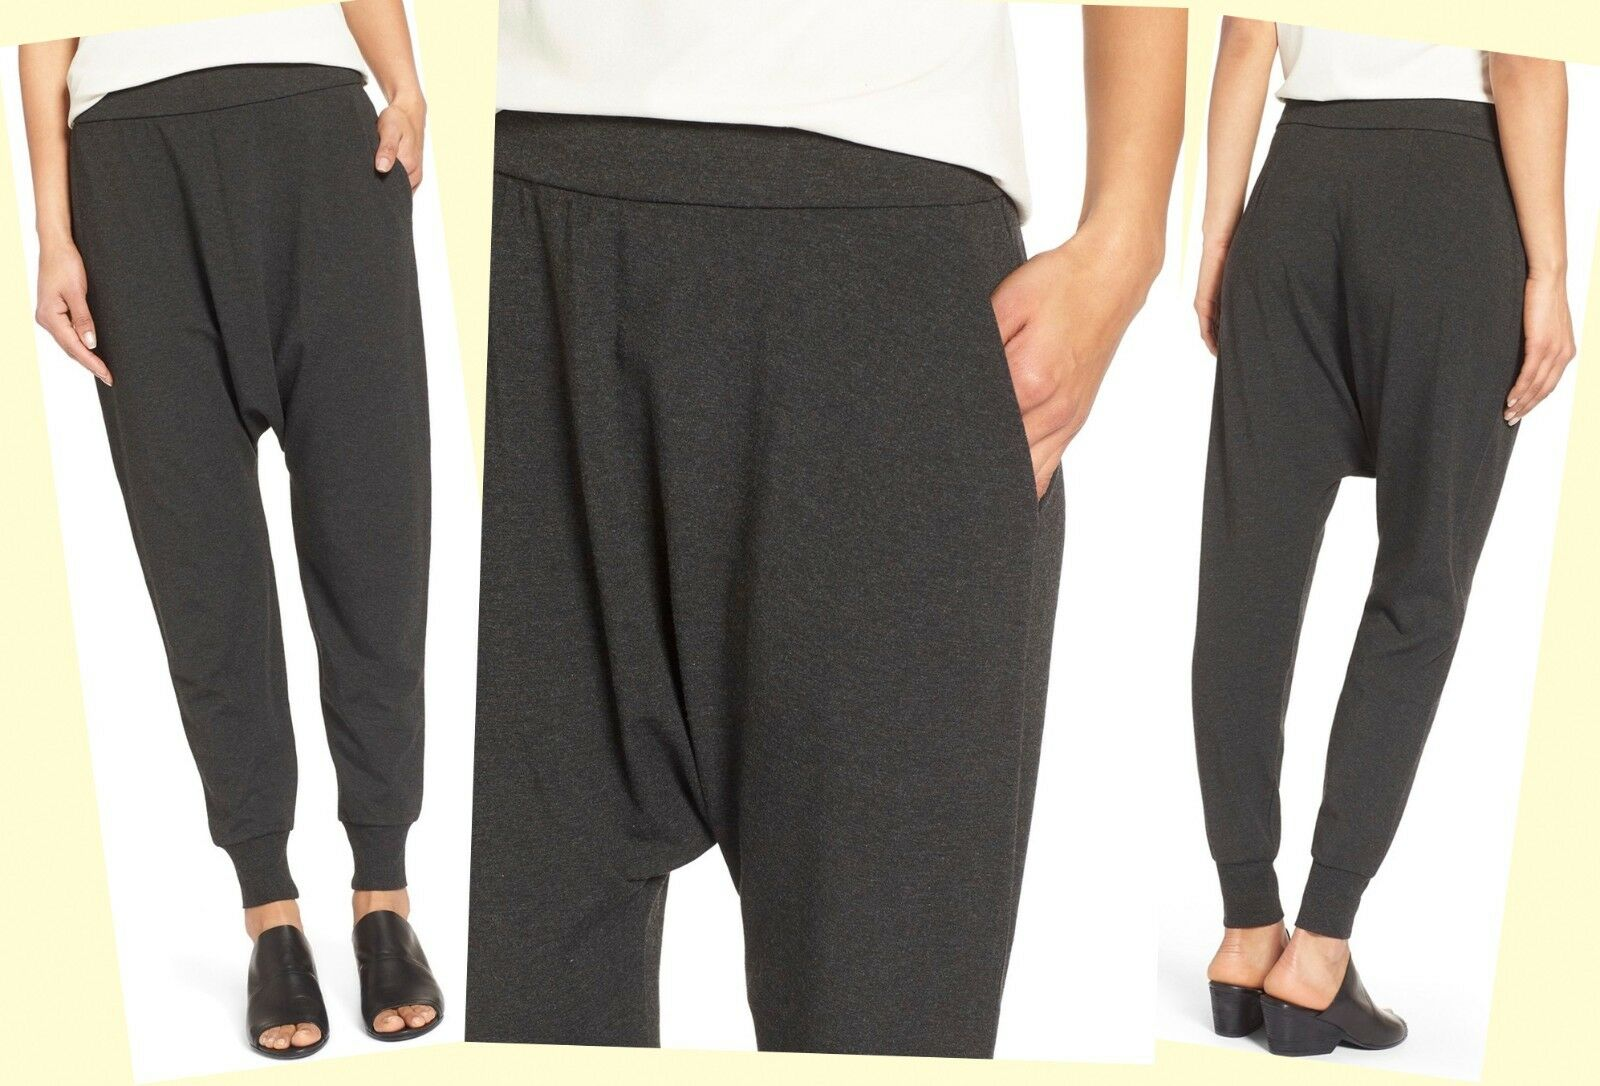 178 Eileen Fisher Cozy Viscose Stretch Slouchy Harem Inspired Ankle Pants